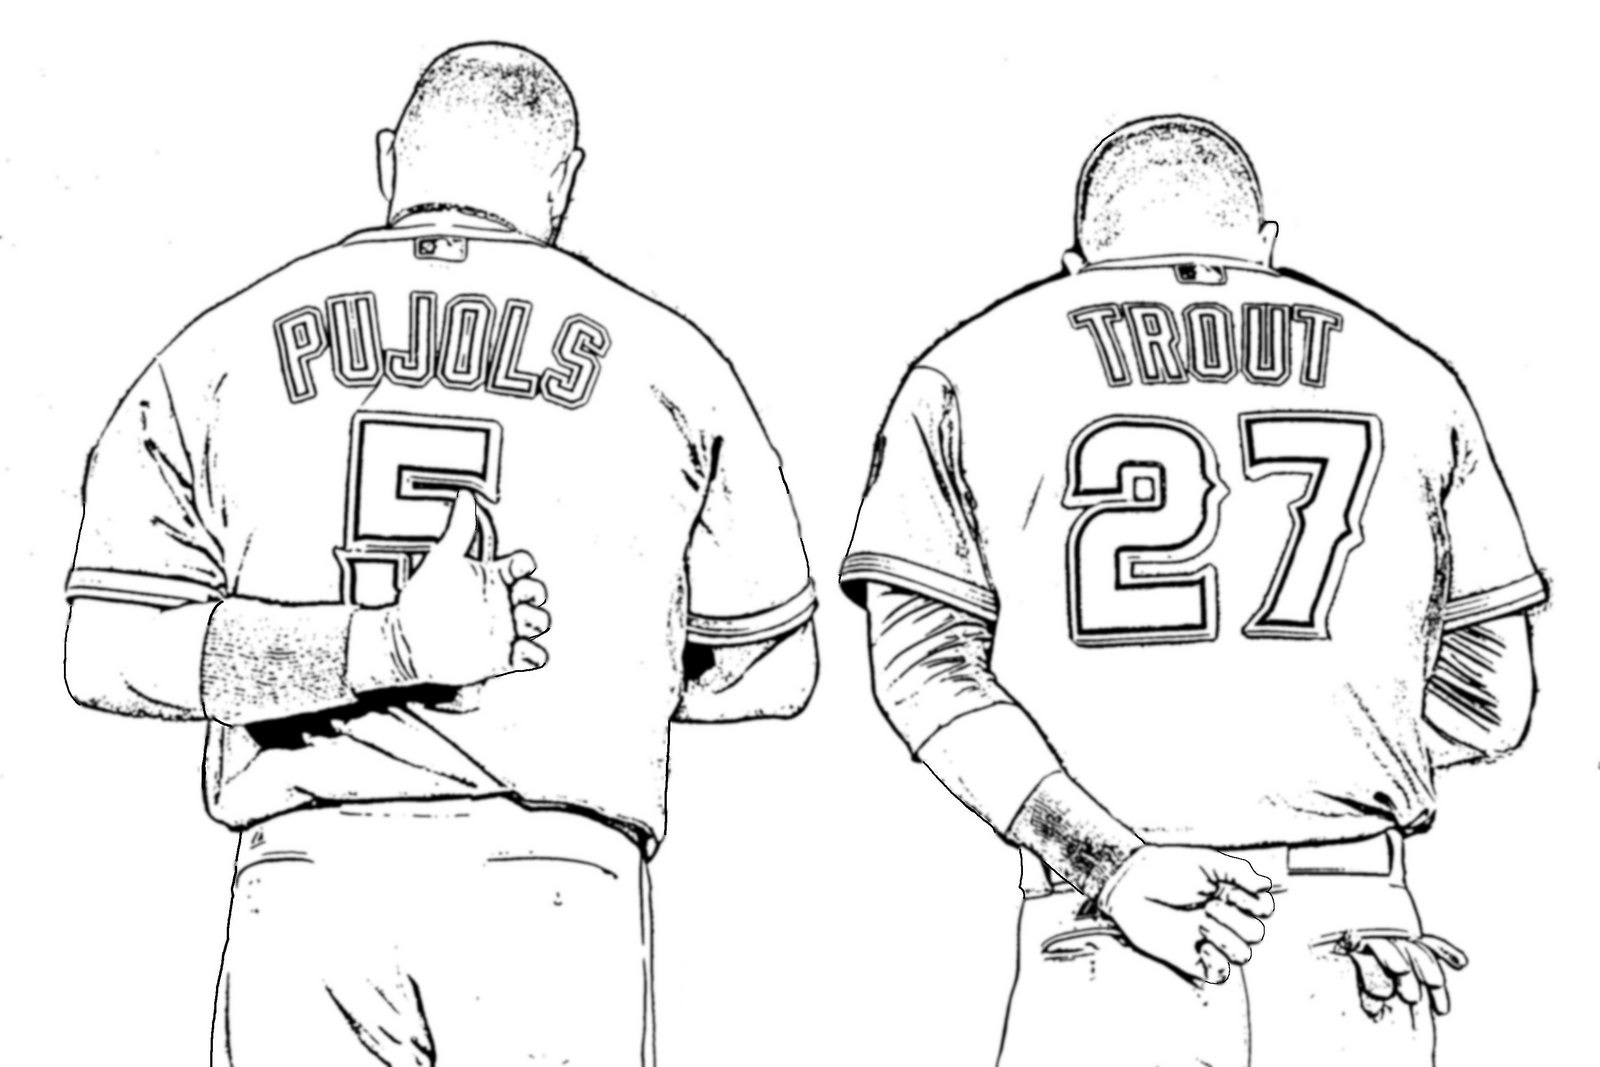 pujols and trout baseball players coloring page